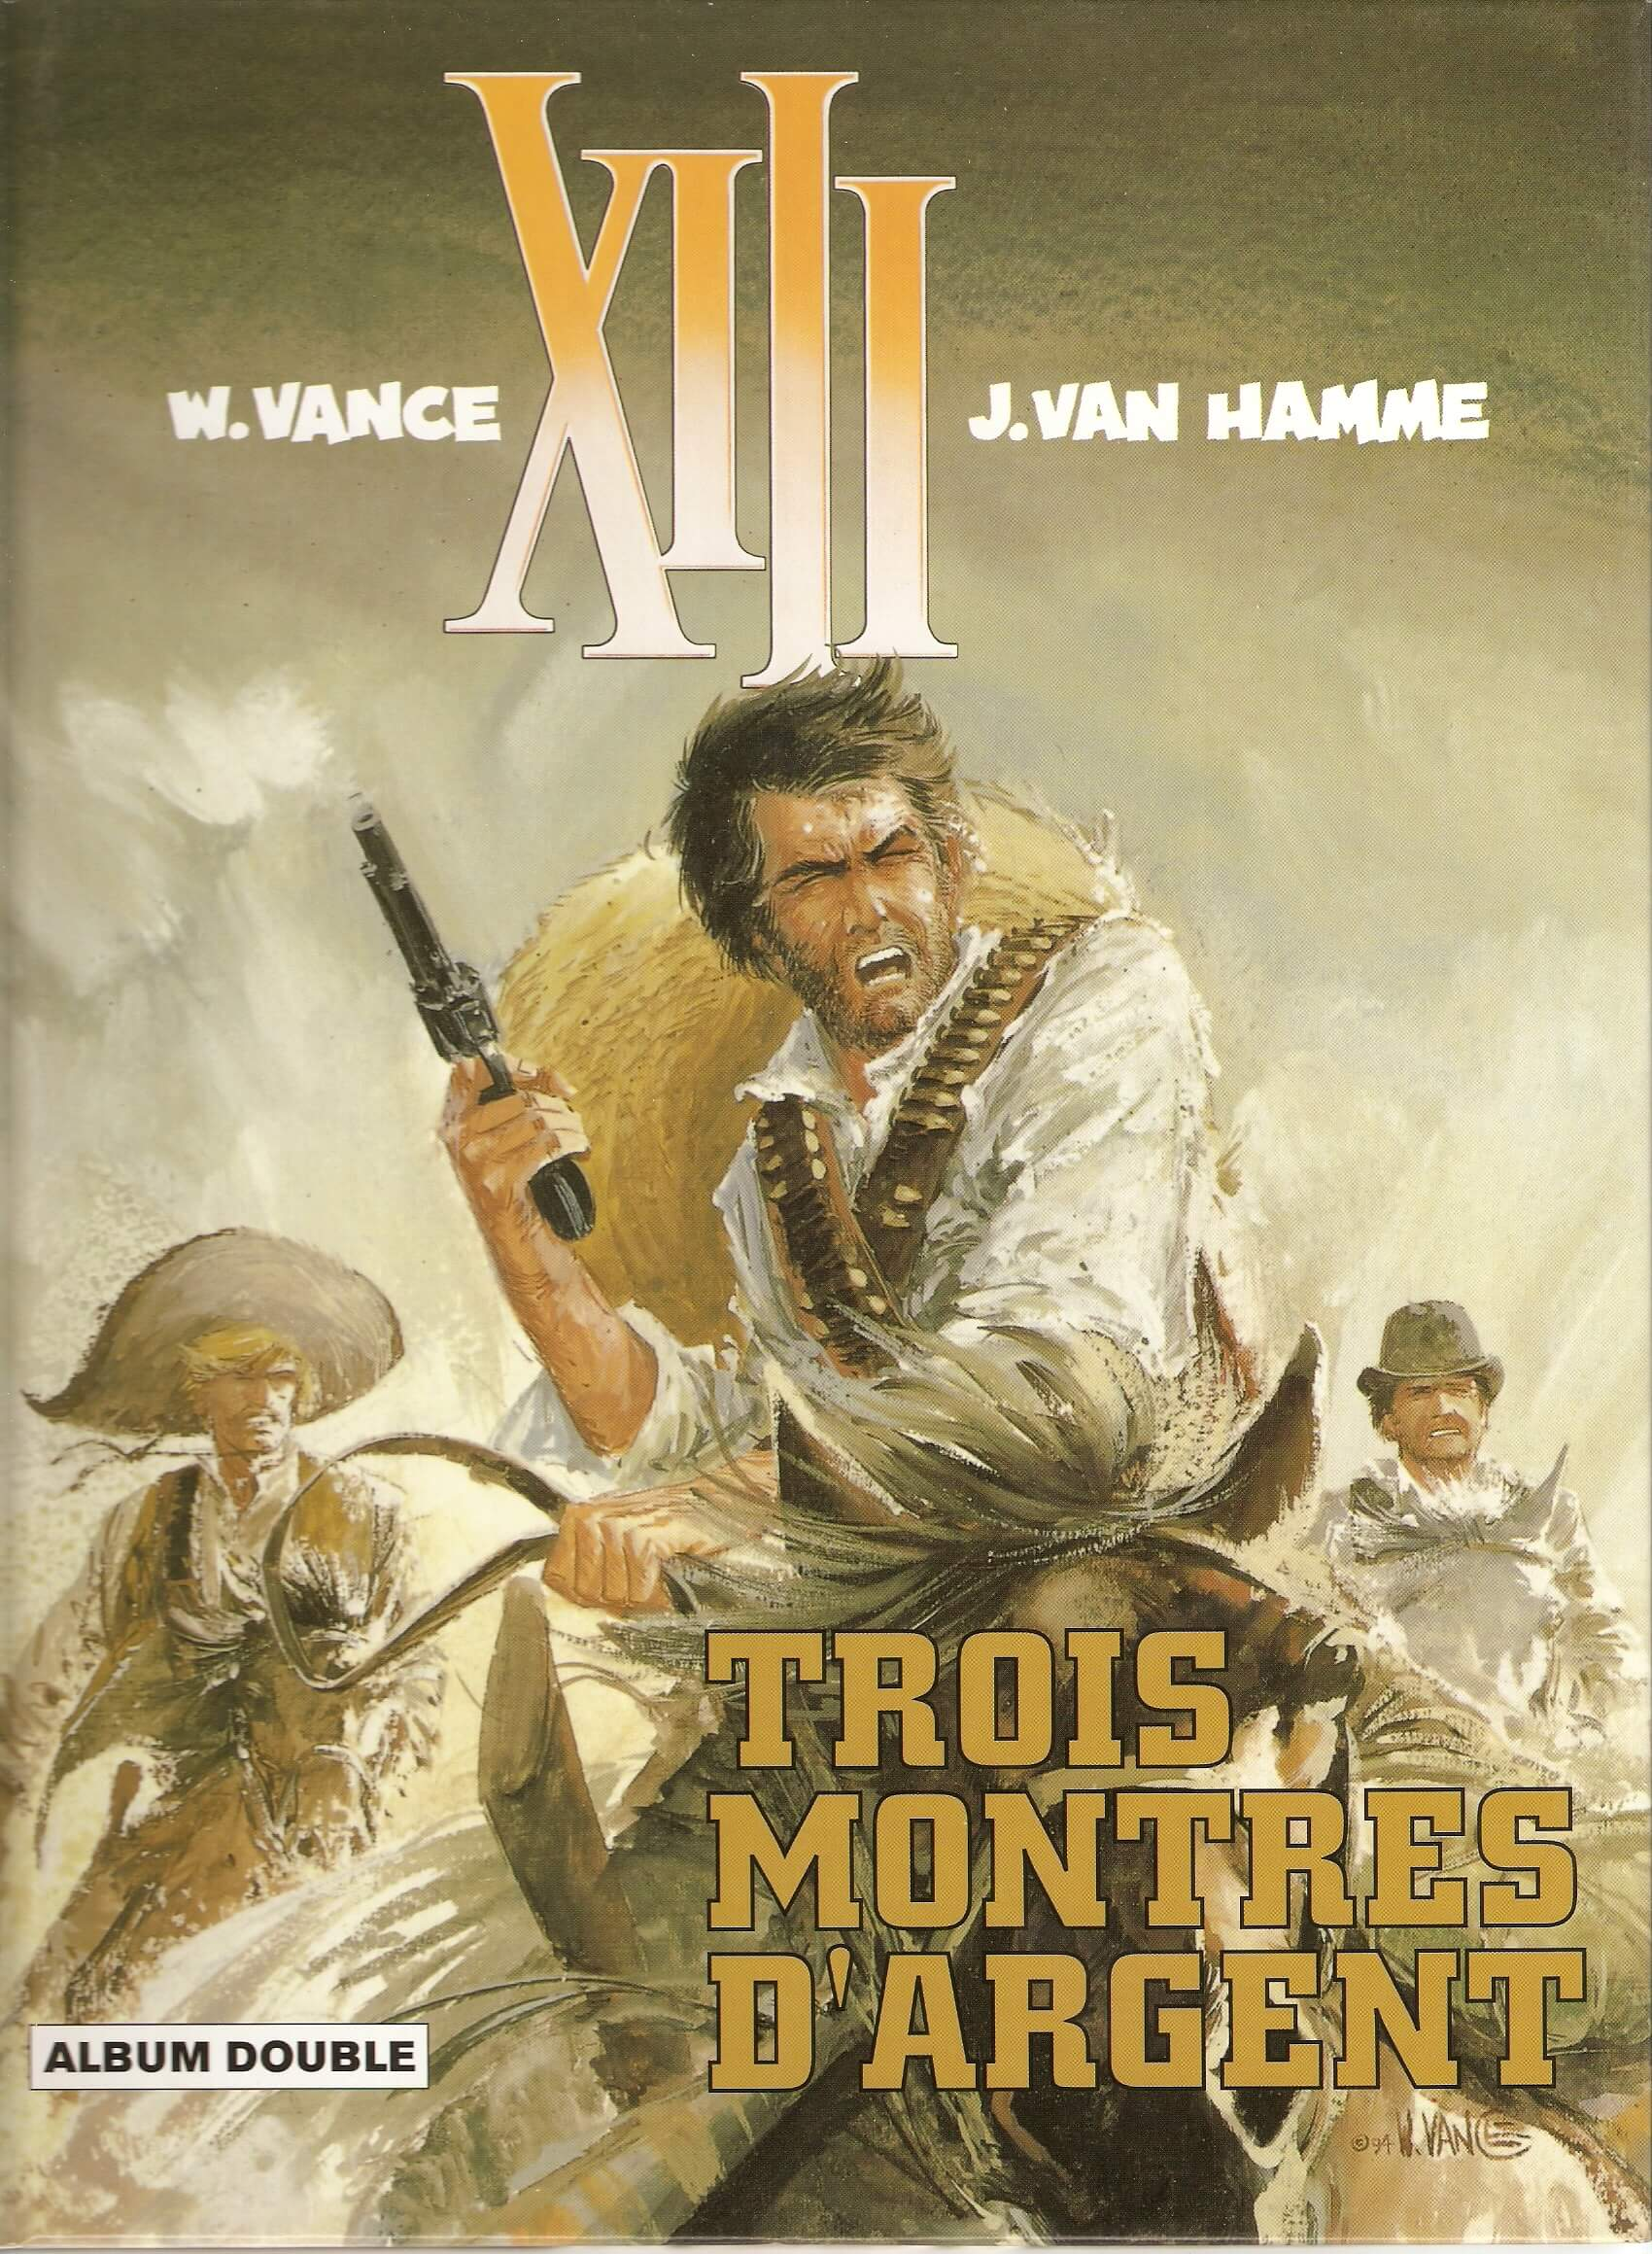 XIII de Jean Van Hamme et William Vance (Dargaud)